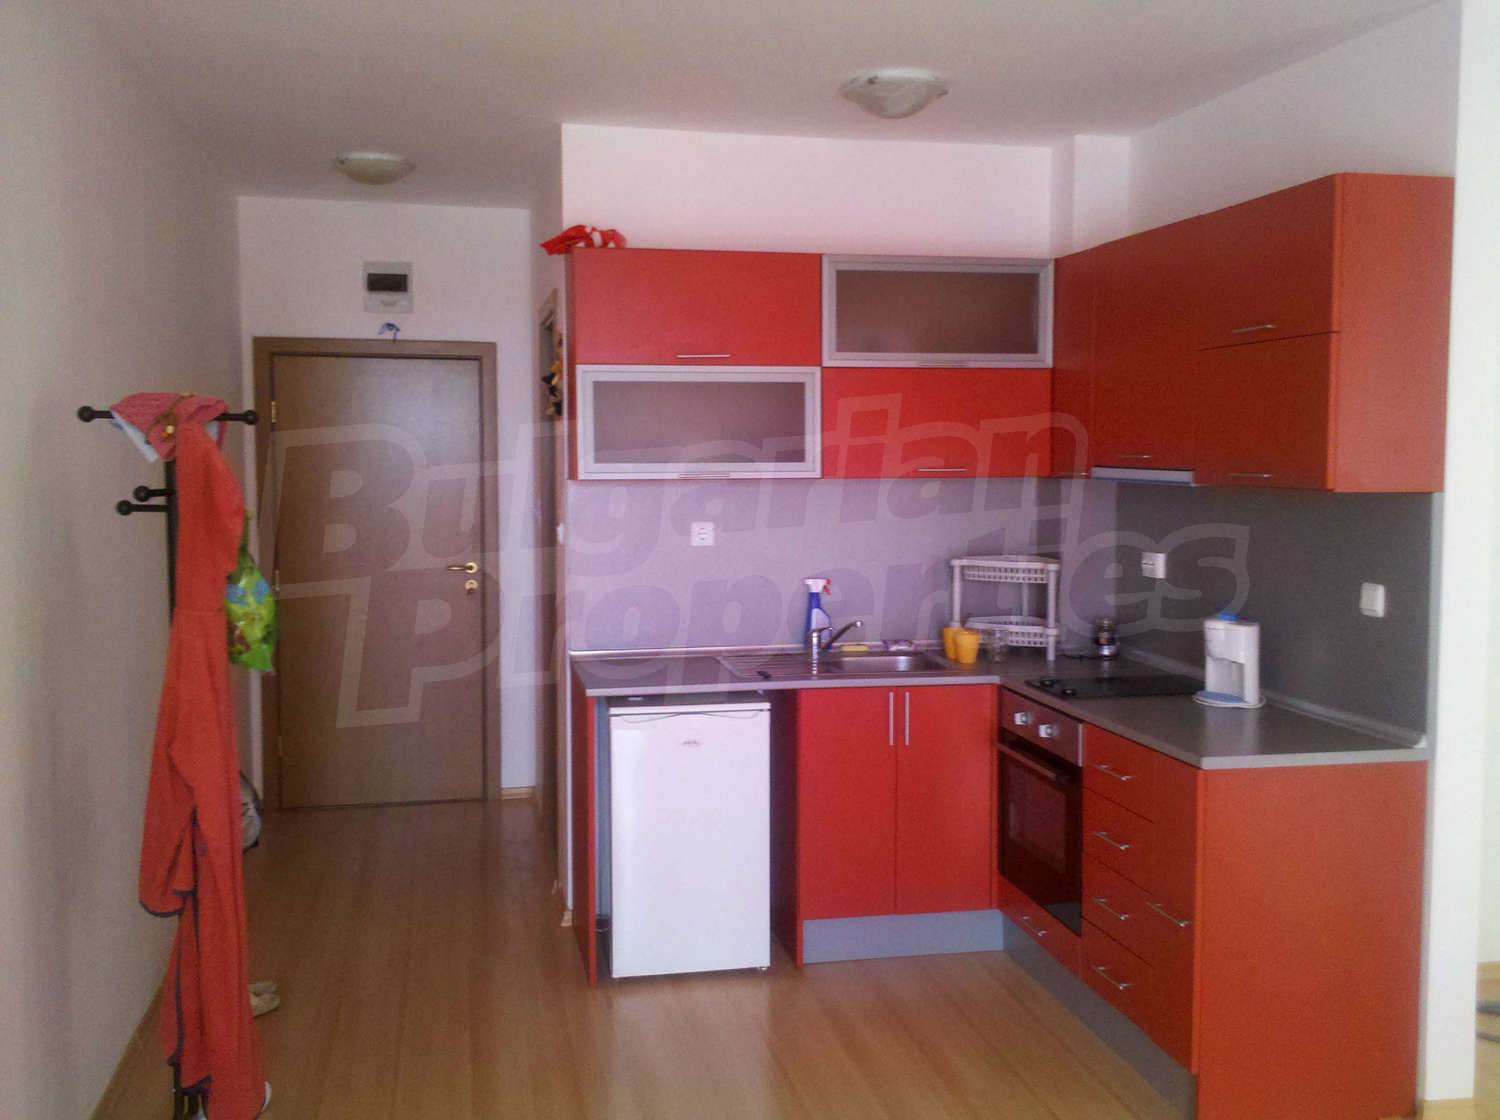 2 Bedroom Apartment For In Sunny Day 6 Complex Near Beach